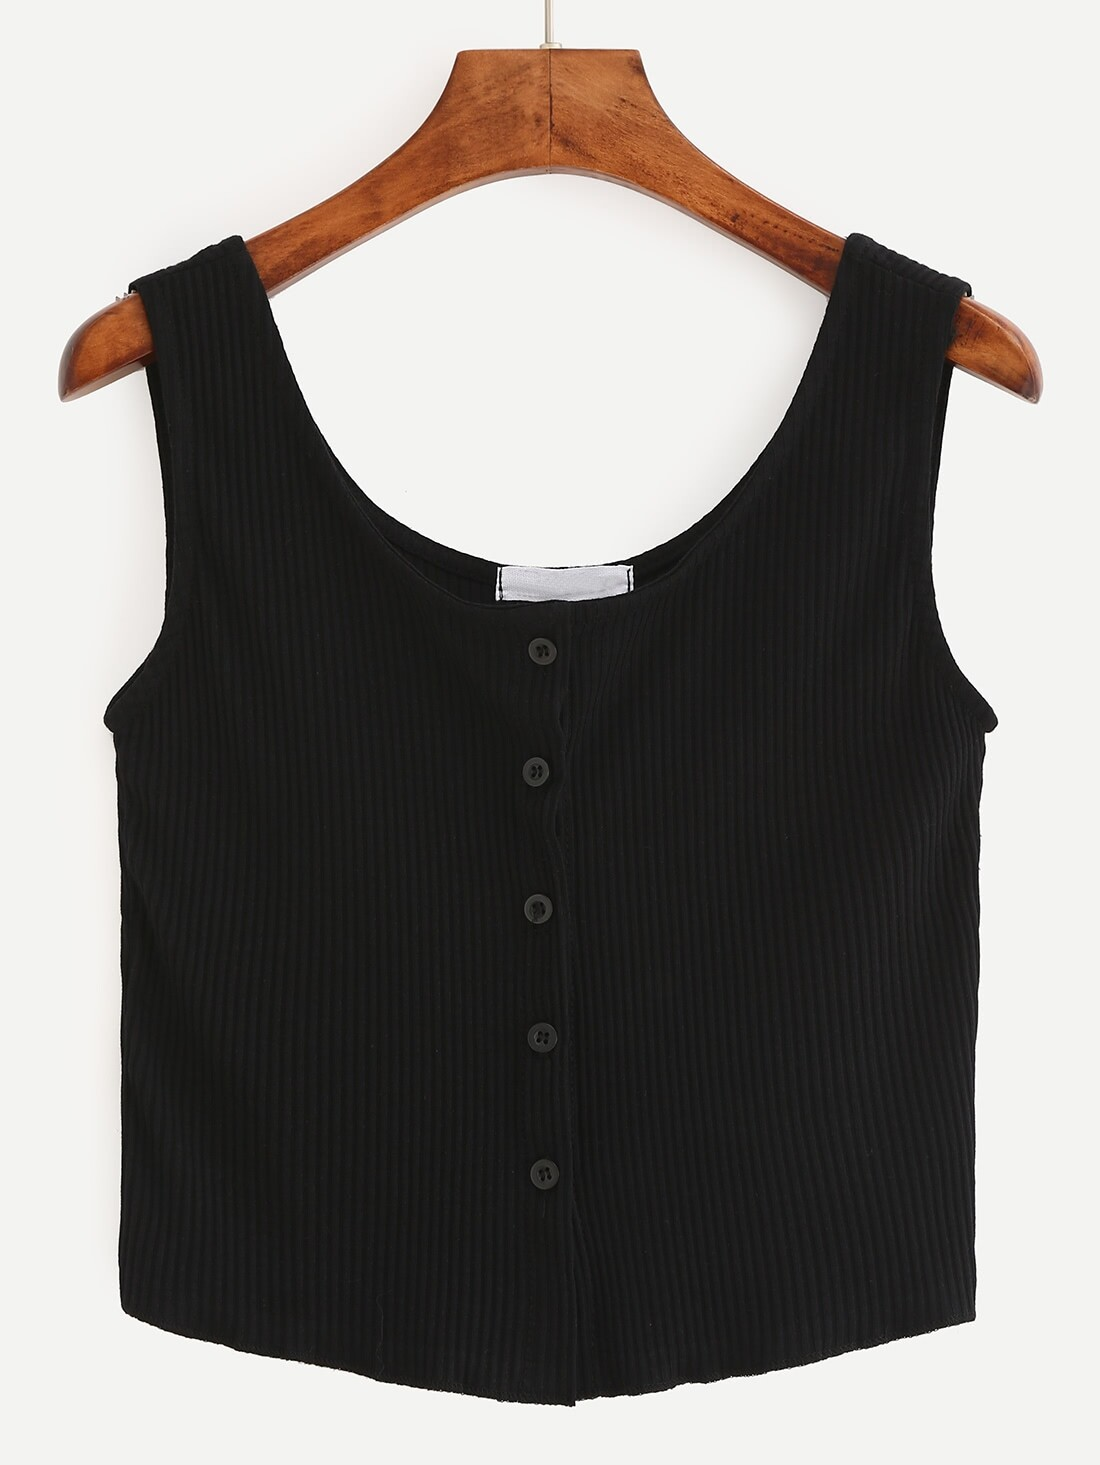 Buttoned Front Ribbed Knit Crop Tank Top - Black vest160524075